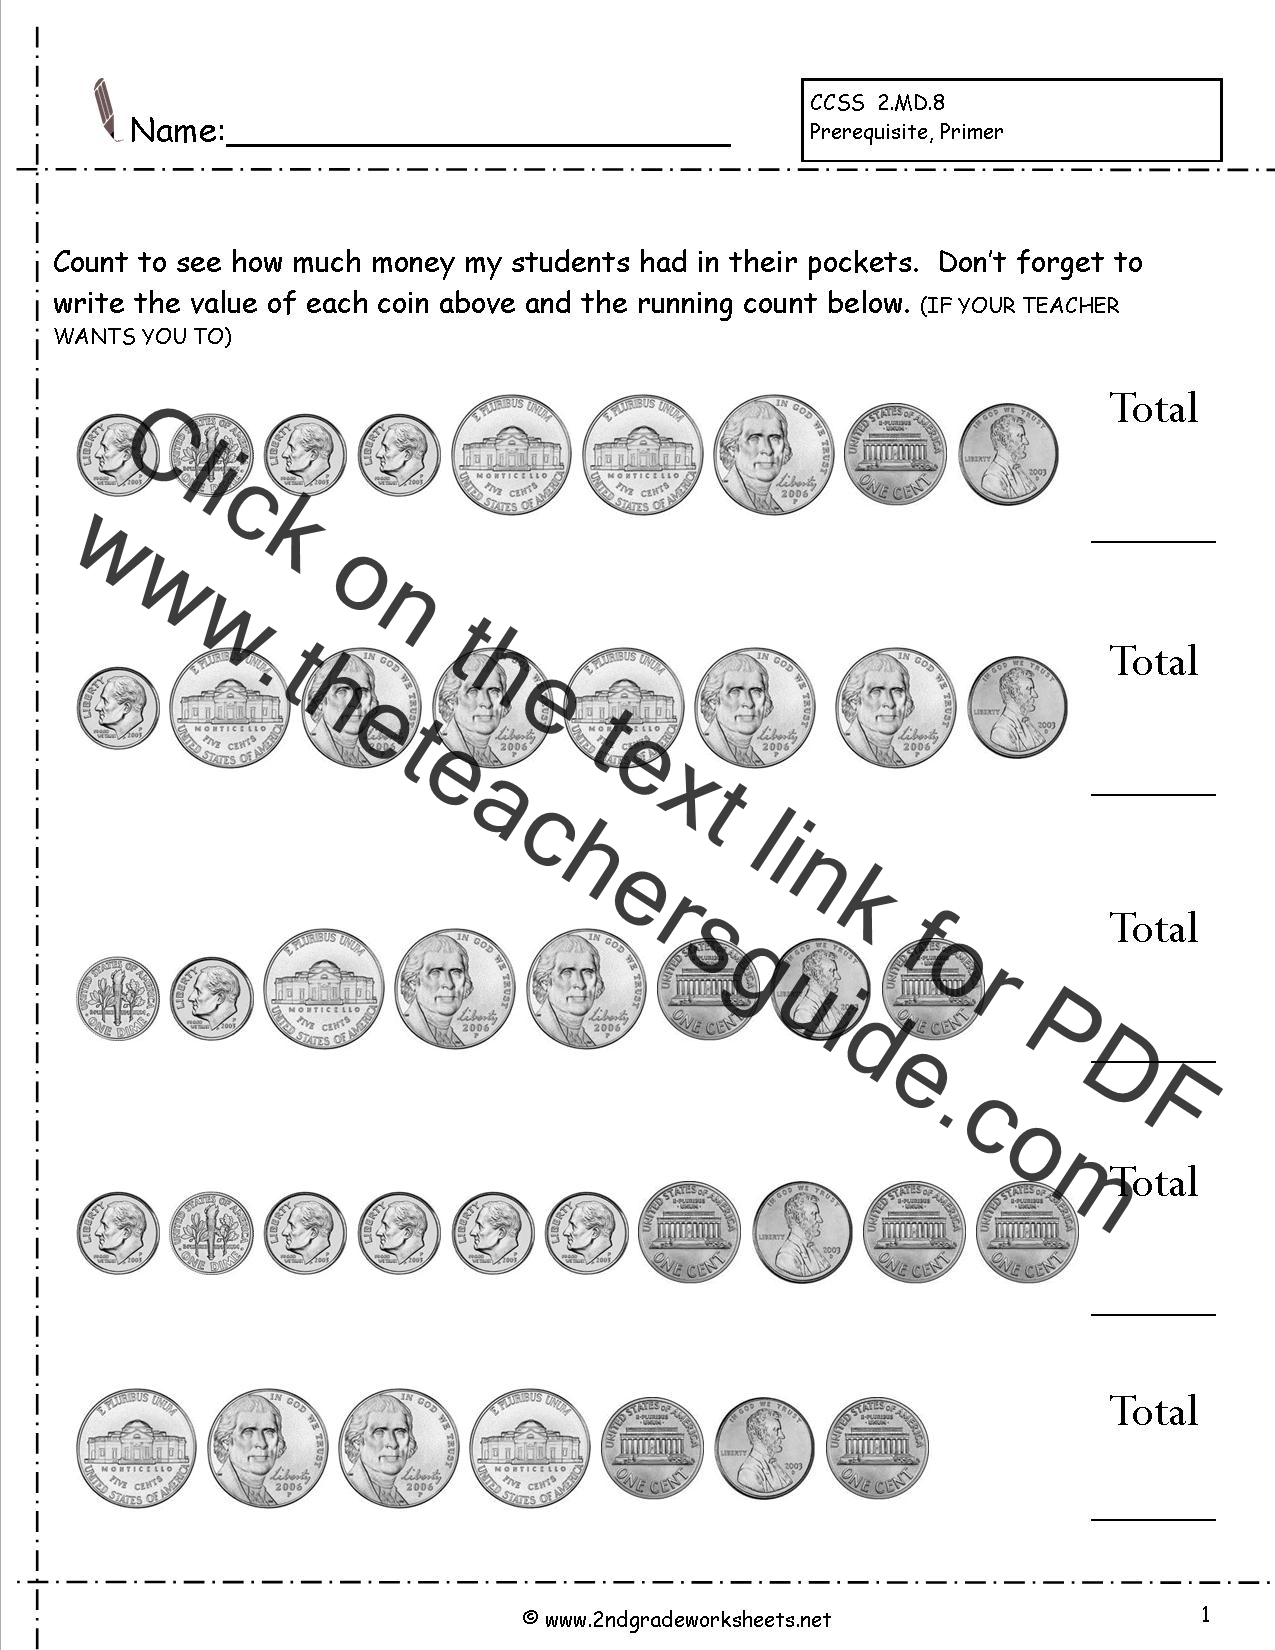 worksheet Printable Counting Worksheets counting coins and money worksheets printouts without quarters